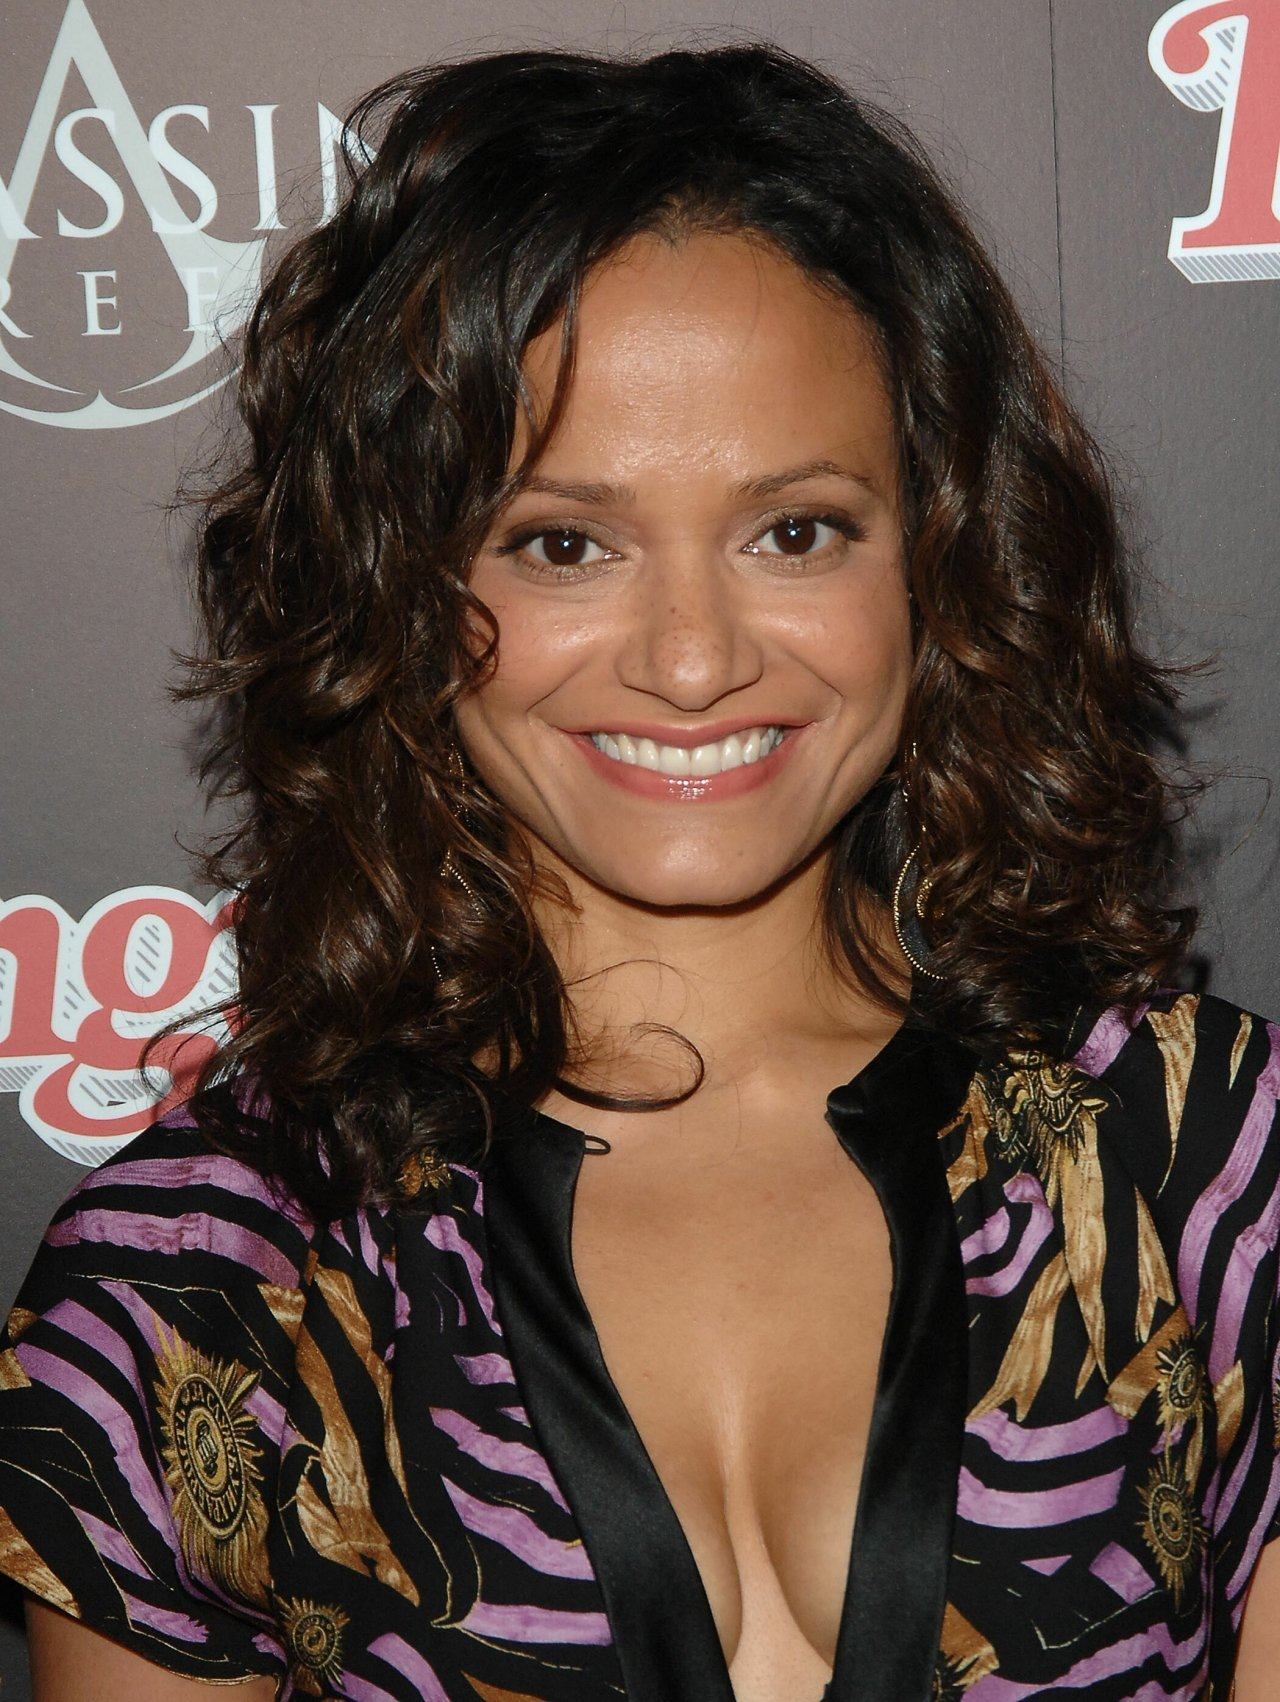 Judy Reyes wallpapers (12629). Top rated Judy Reyes photos